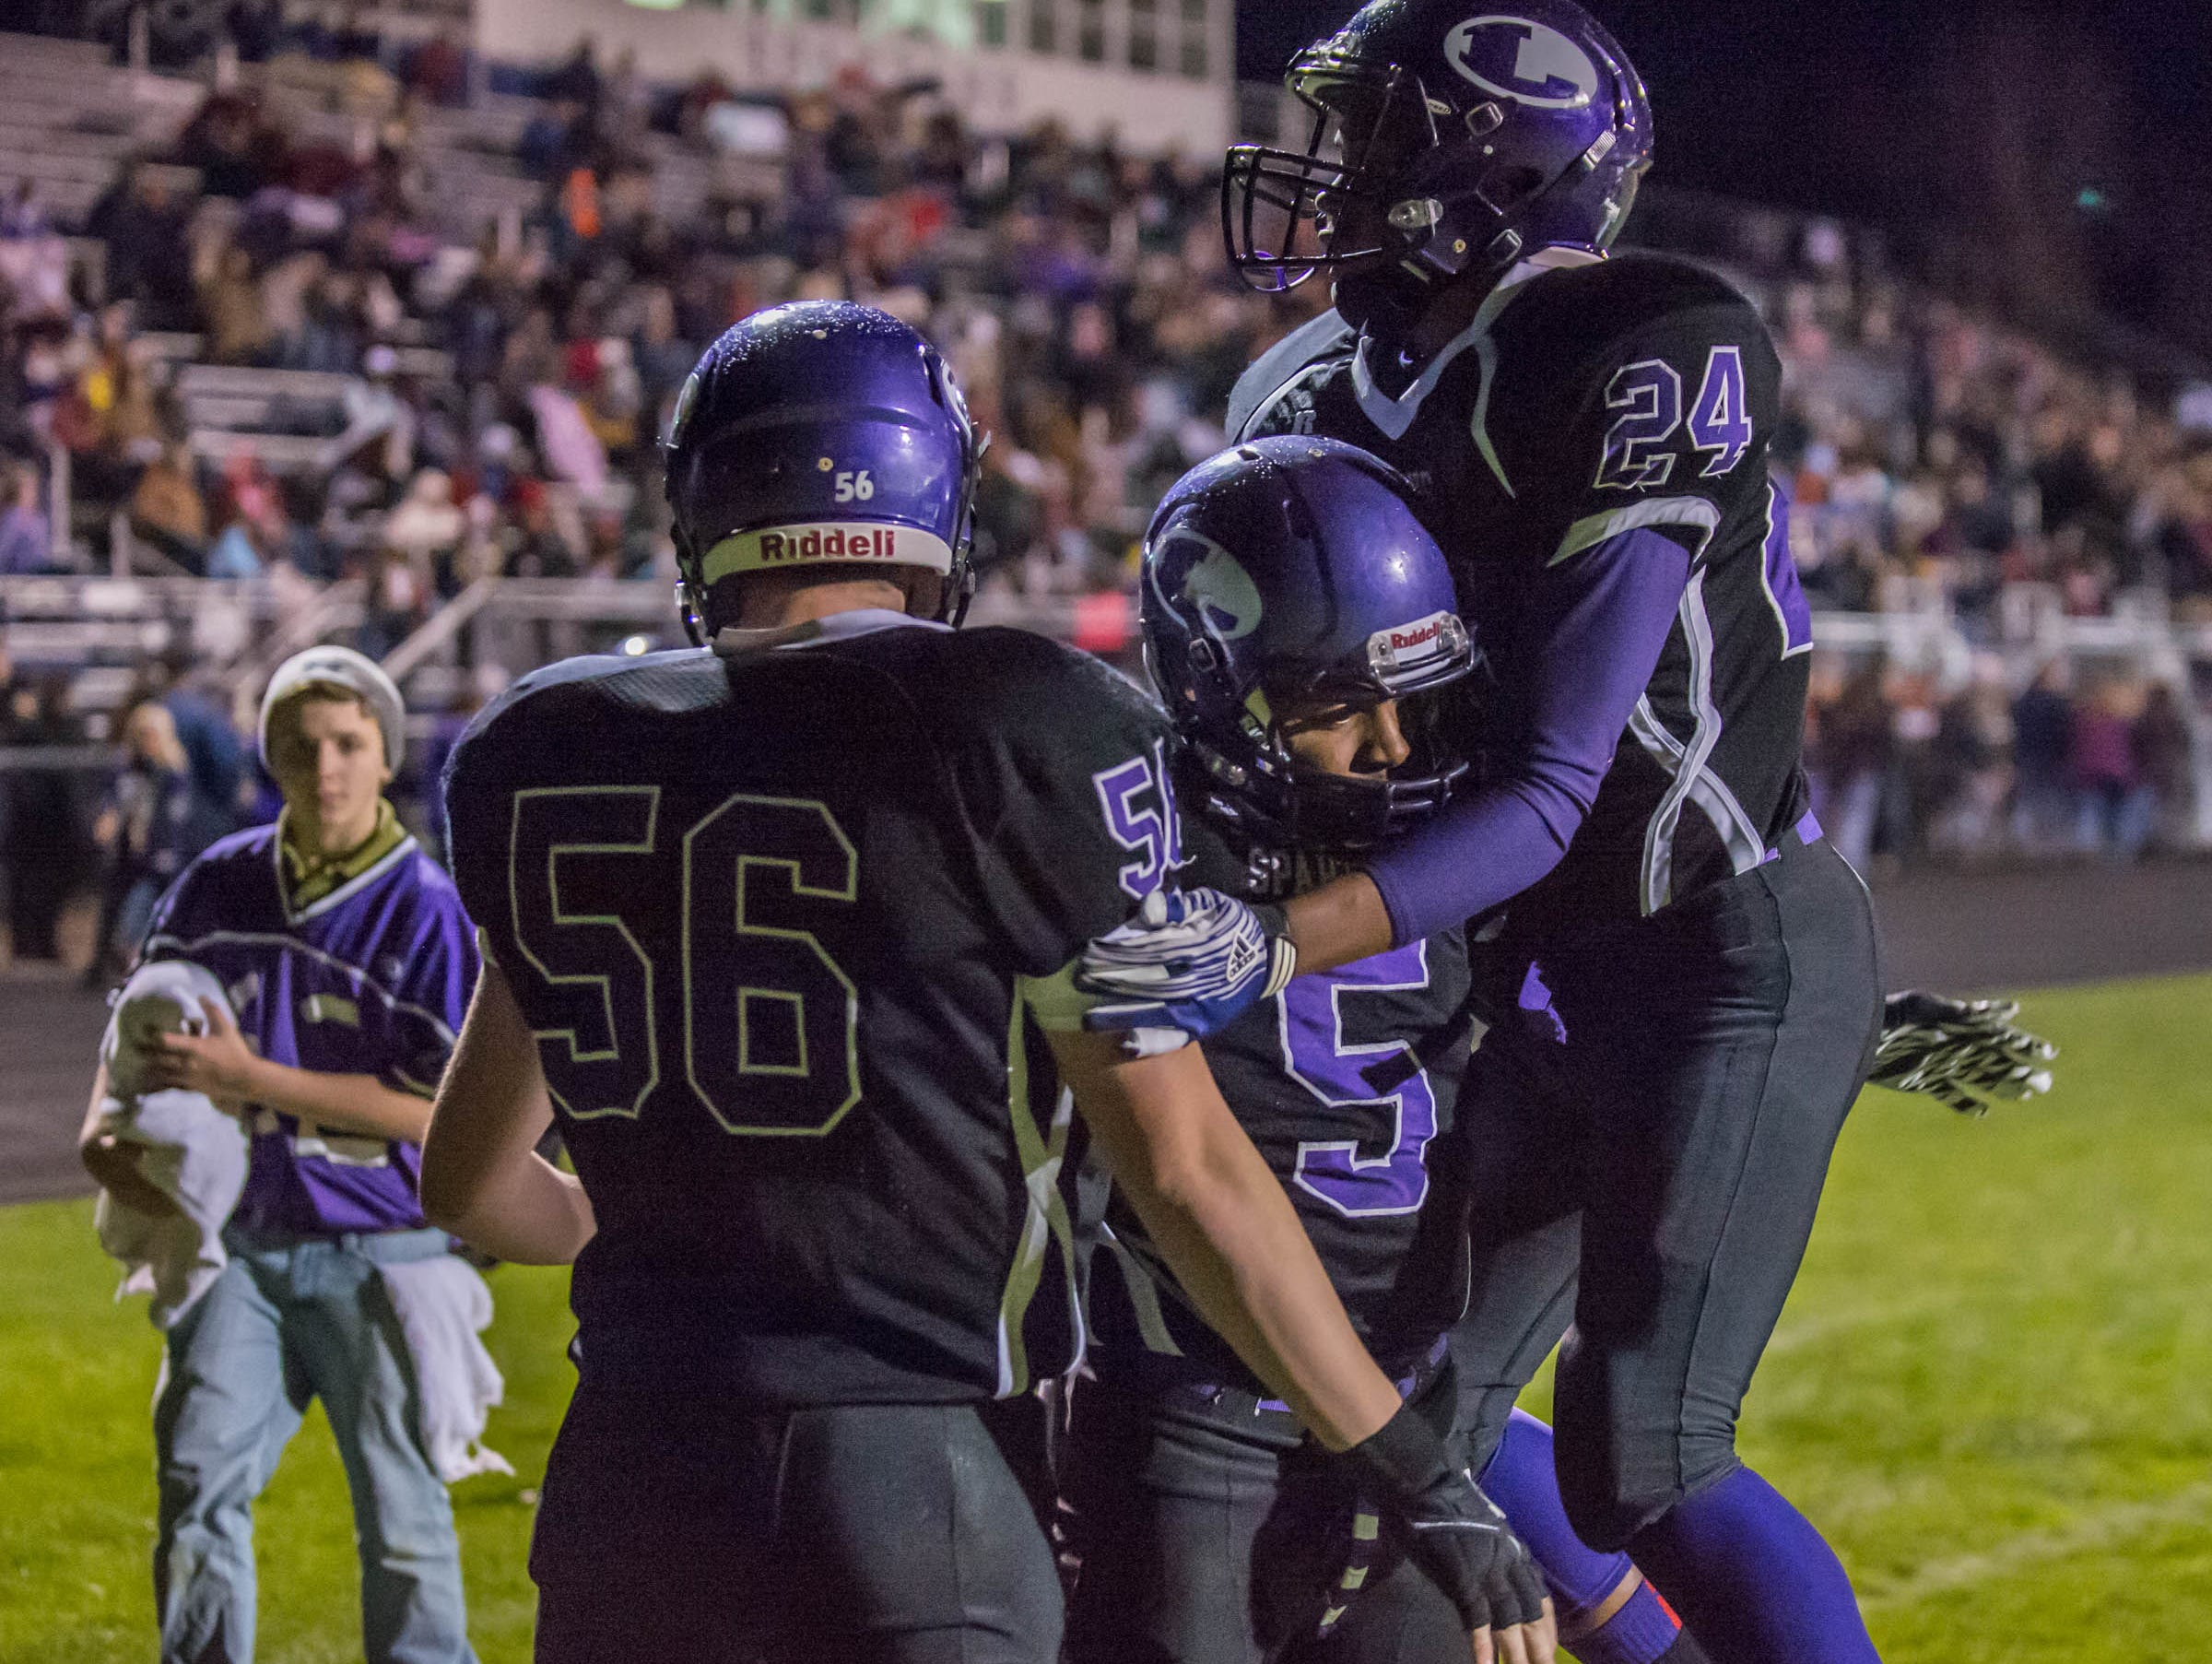 Lakeview's Zach Norstrom (56), Dre' On Kemp (5), and Dashone Asberry (24) celebrate after a touchdown Friday evening against Gull Lake.